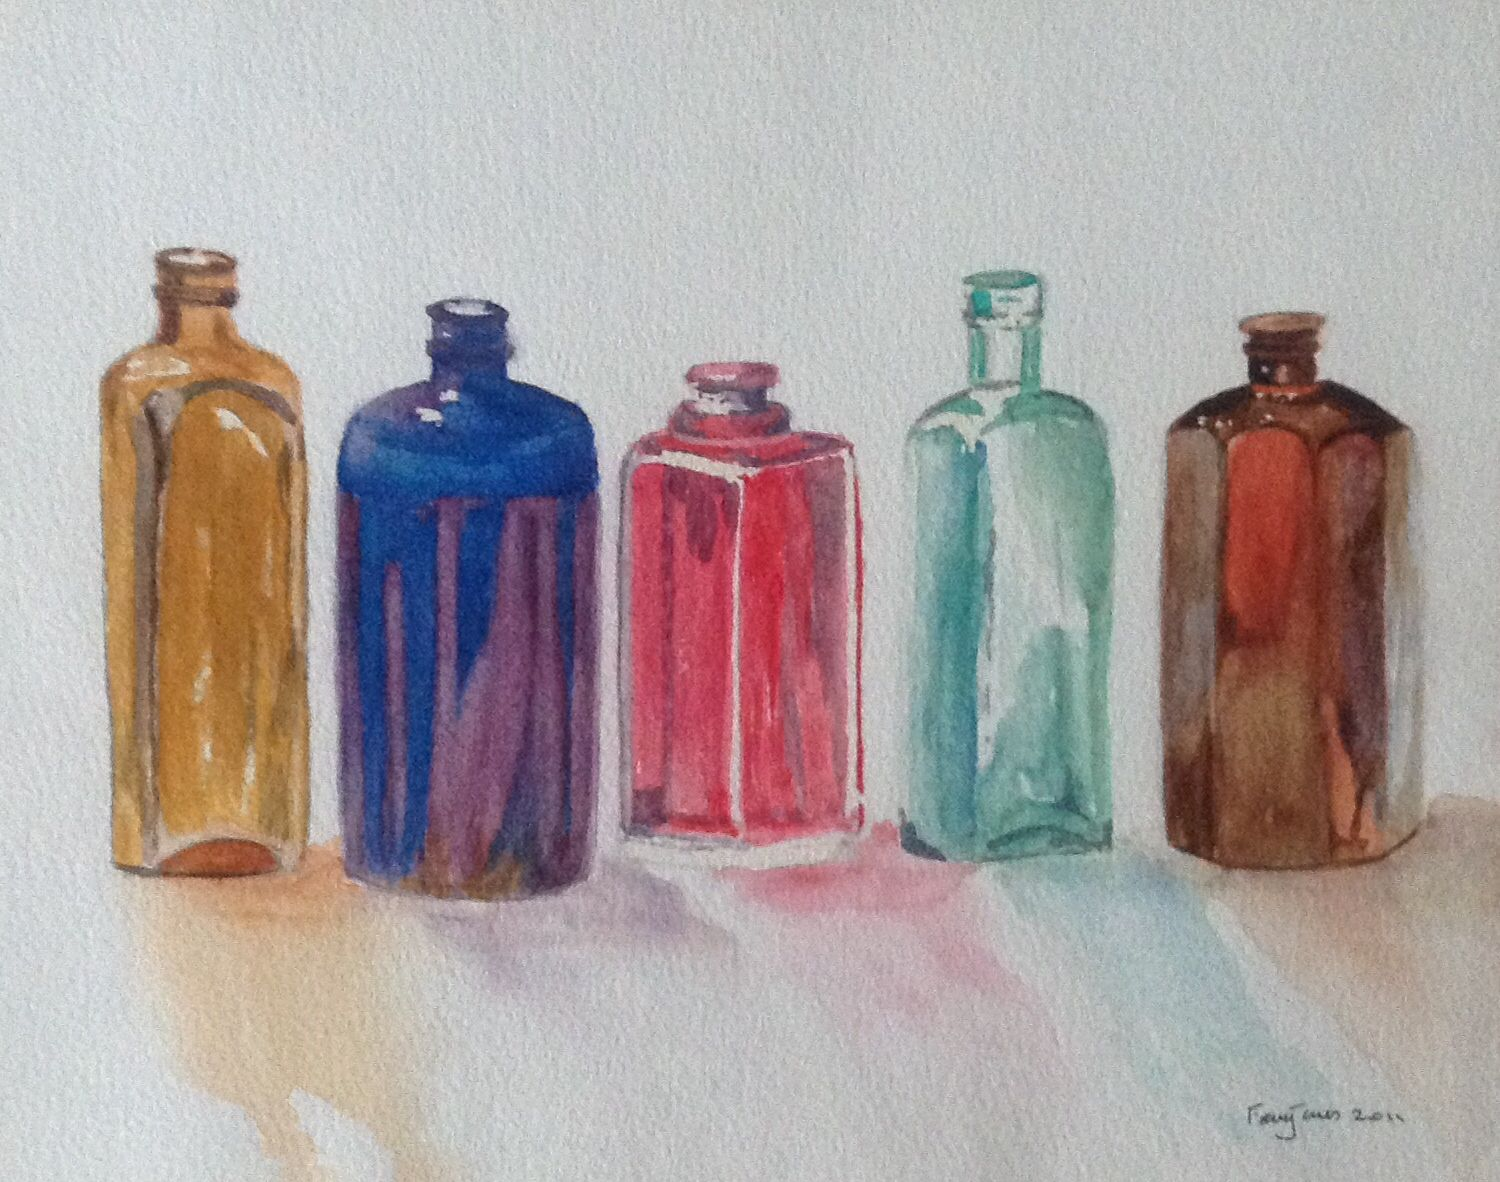 Watercolour Of Reflections In Glass Bottles By Fran Jones From A